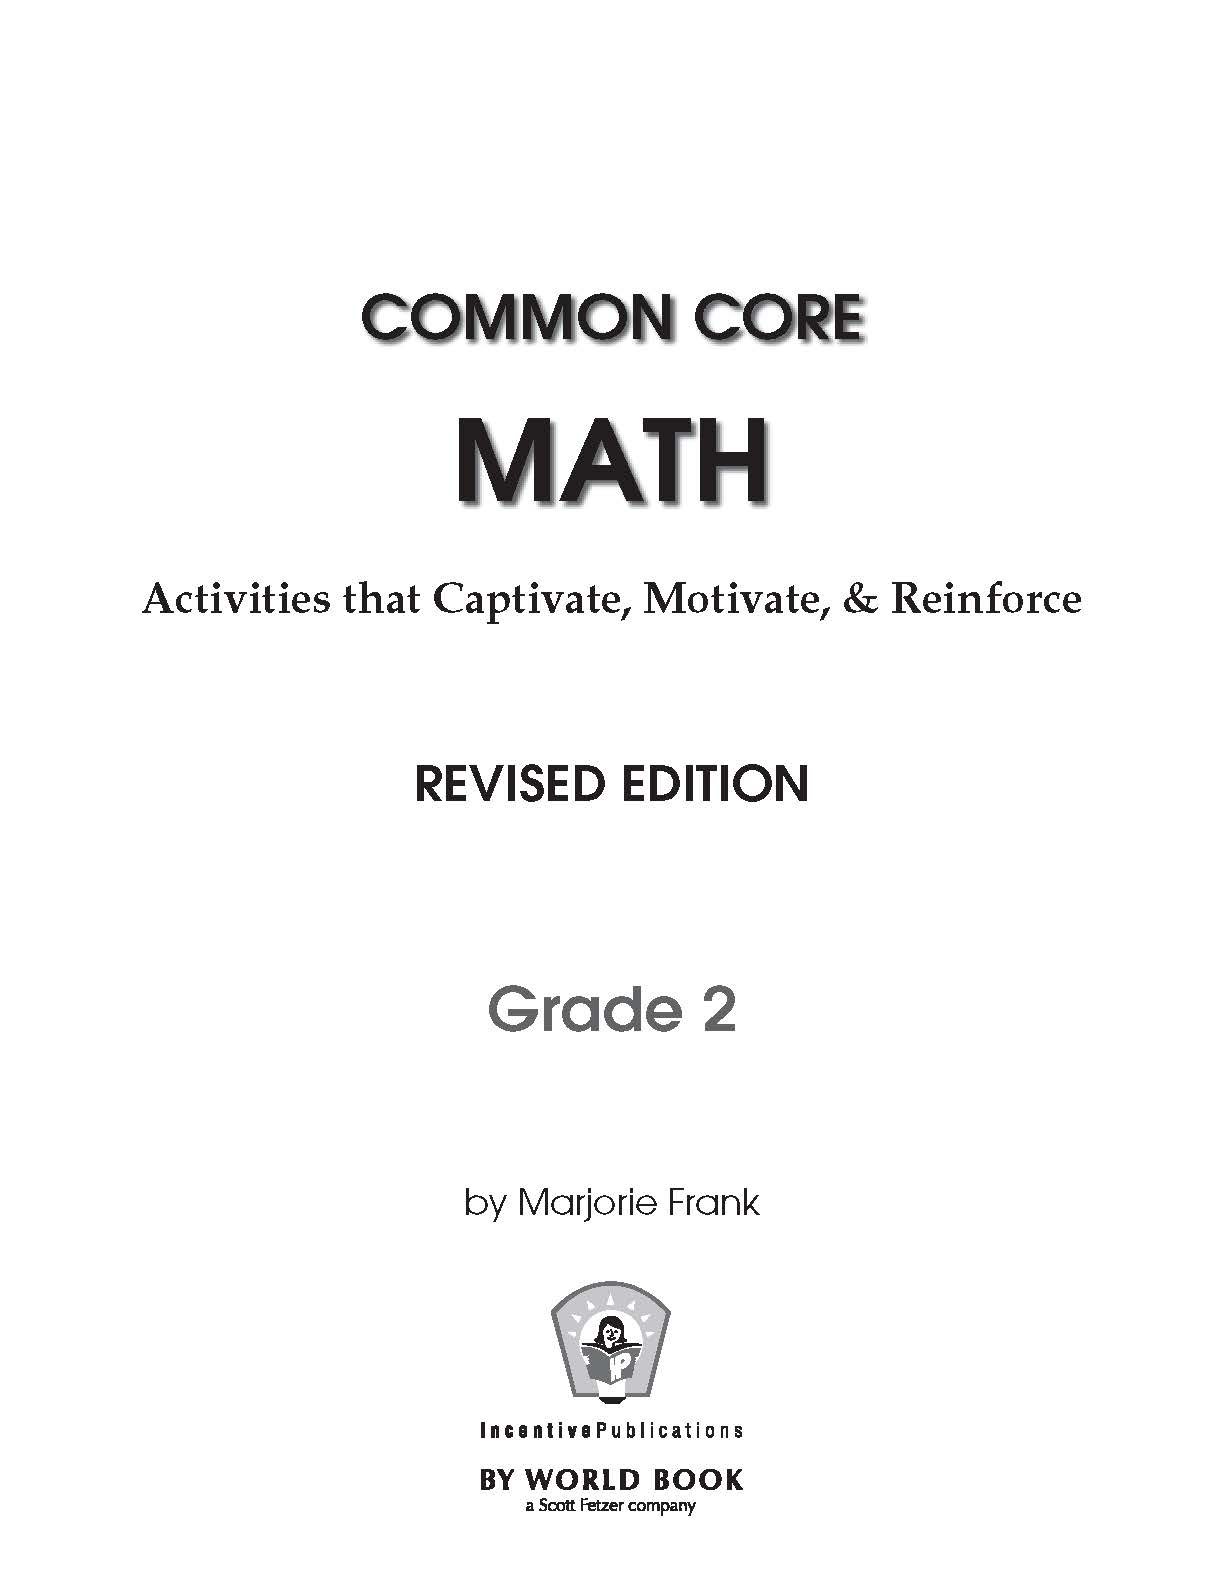 Common Core Math Grade 2 - IP3821